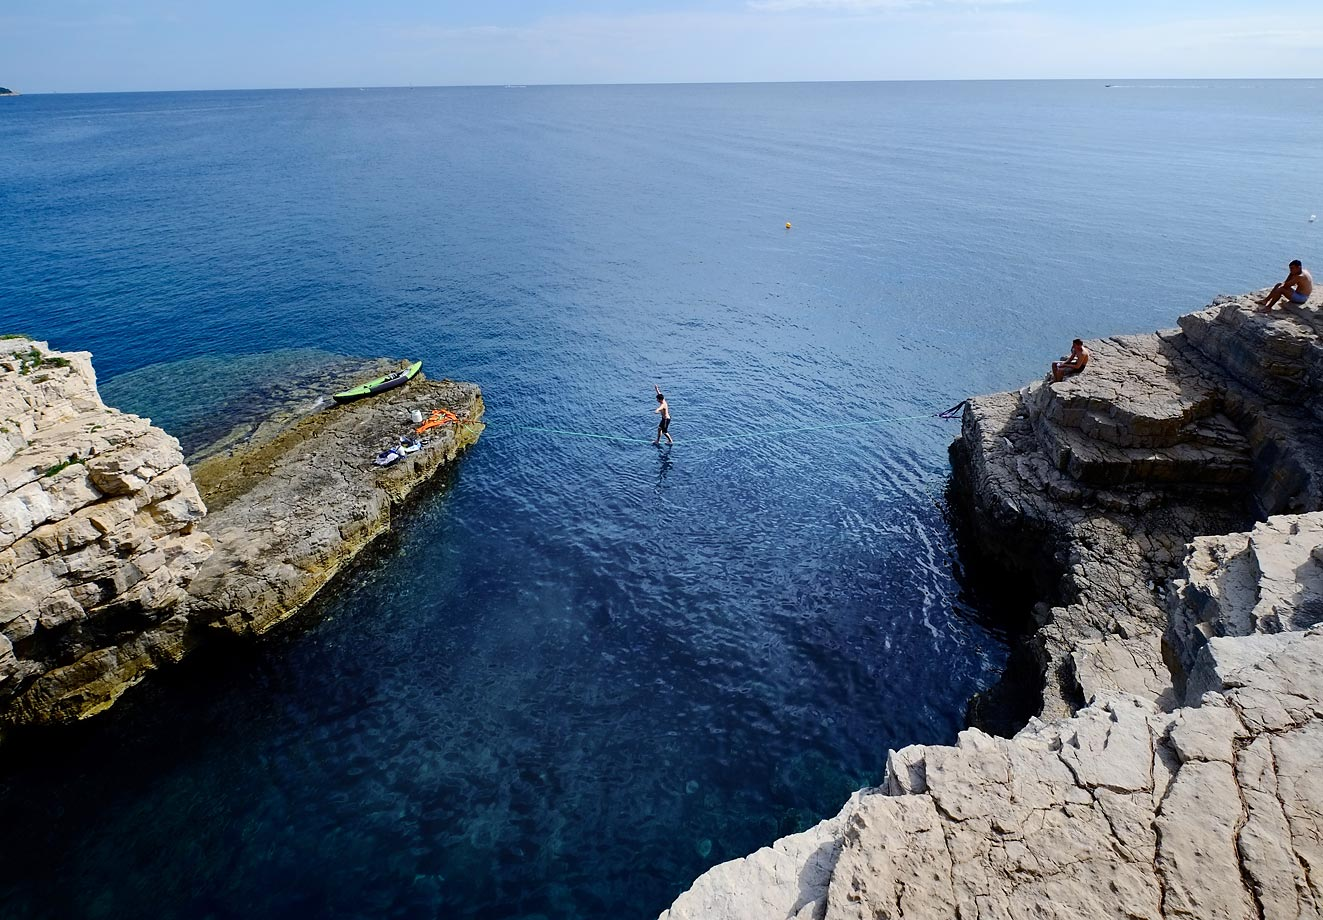 A climber walks over a 'Slackline' at the cliffs of Stoja on Aug. 5, 2014, near Pula, Croatia.